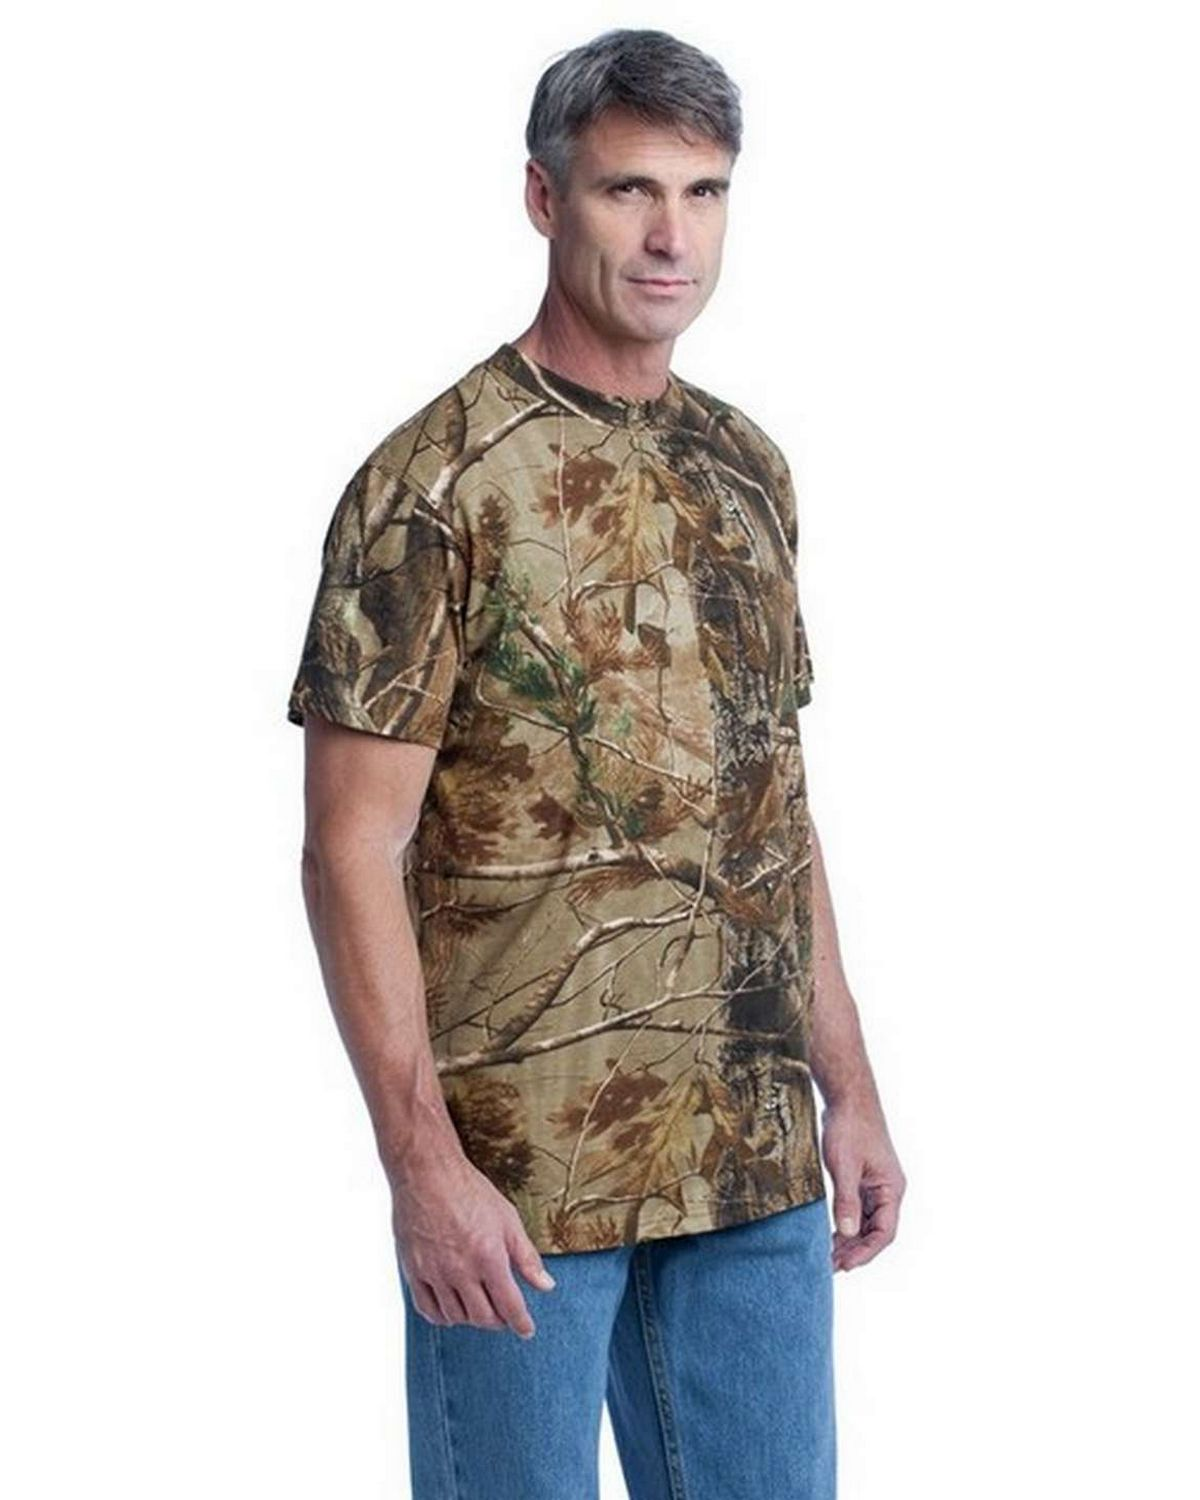 Russell Outdoors S021R Realtree Explorer 100% Cotton T-Shirt with Pocket